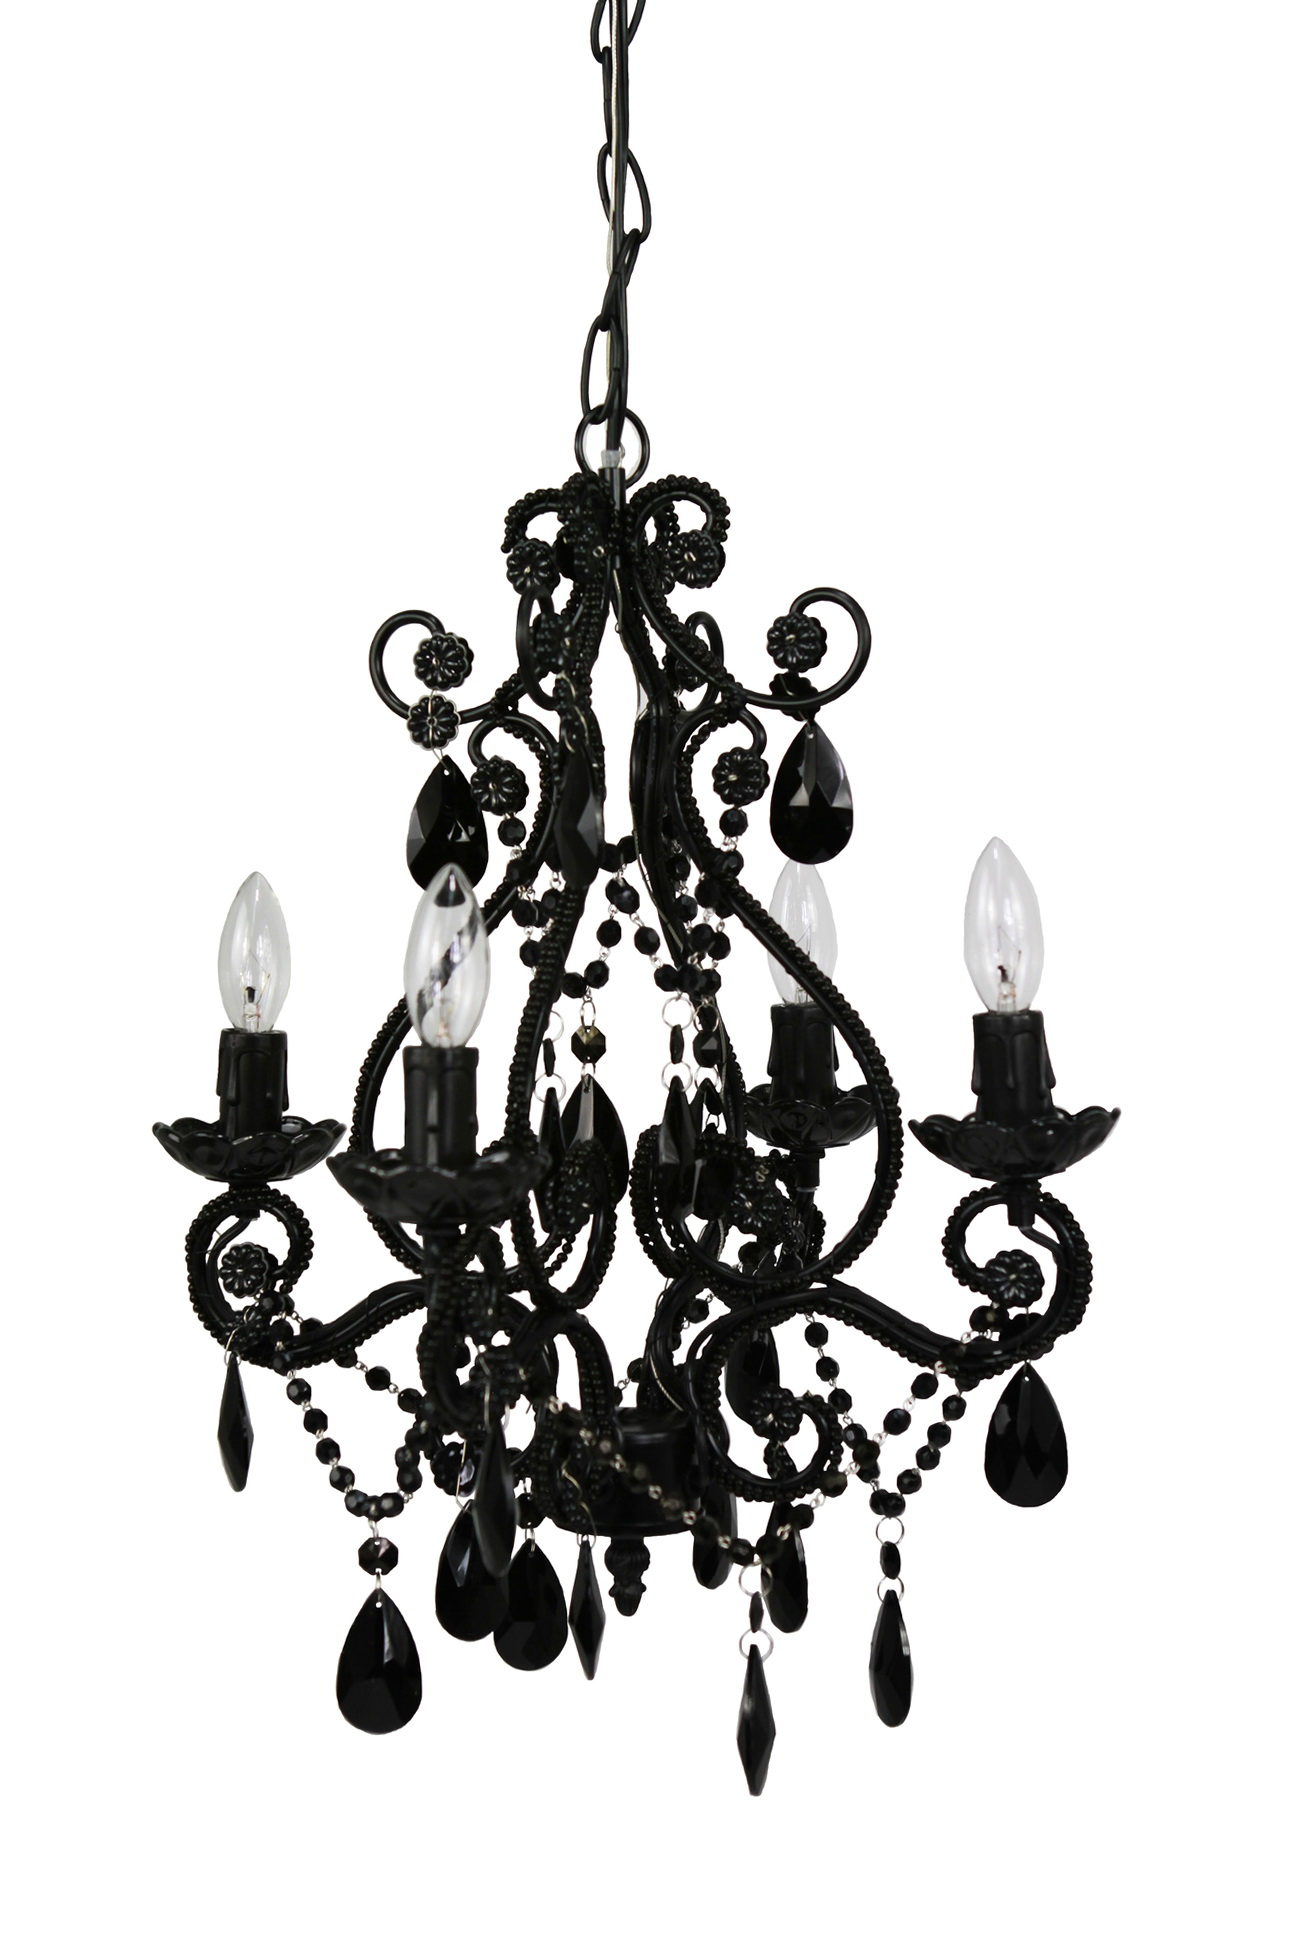 Cheap chandeliers for bedrooms home design ideas - Inexpensive chandeliers for bedroom ...